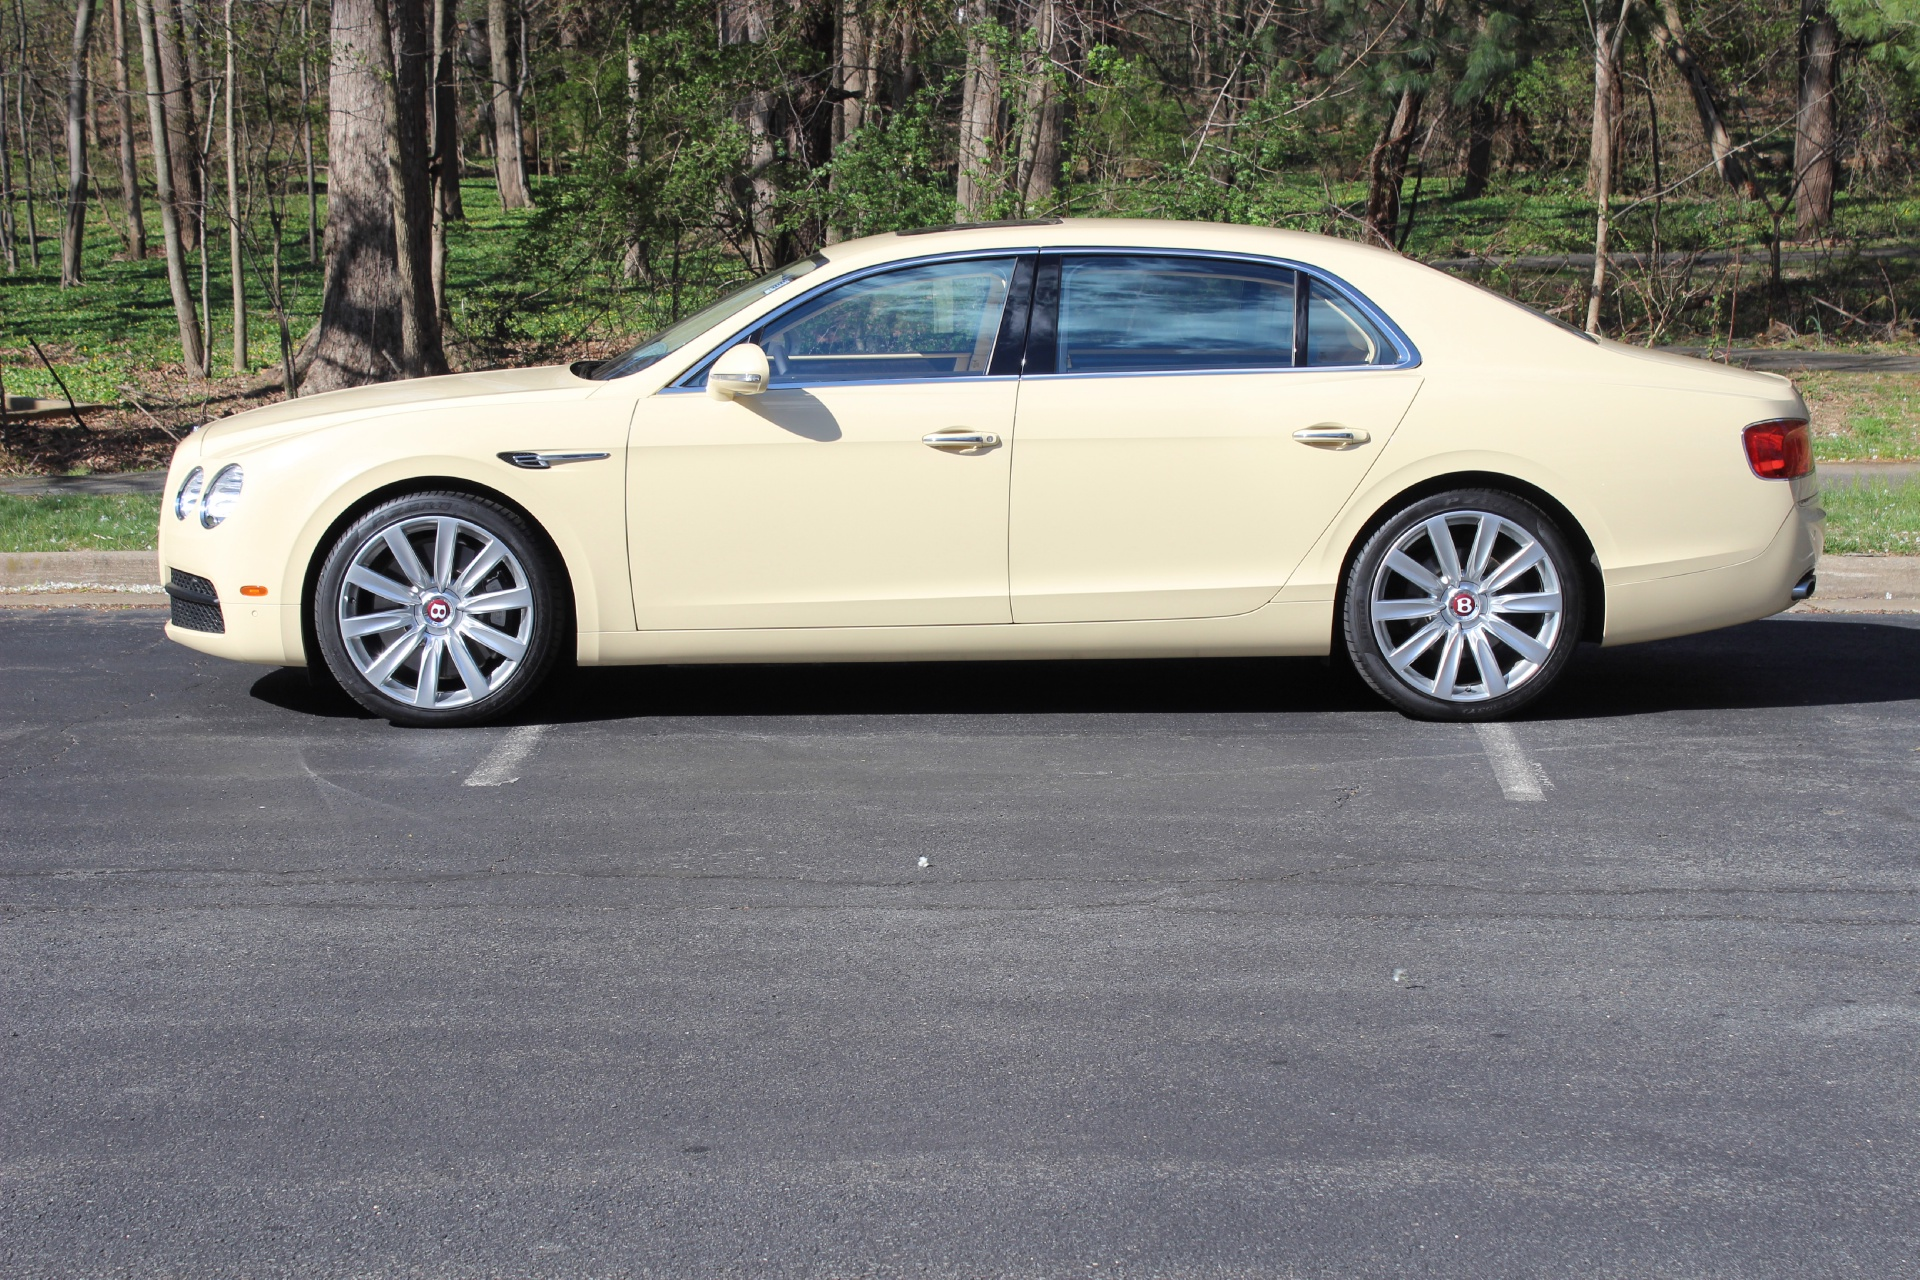 2015 bentley flying spur stock 5nc041218a for sale near vienna va va bentley dealer for. Black Bedroom Furniture Sets. Home Design Ideas